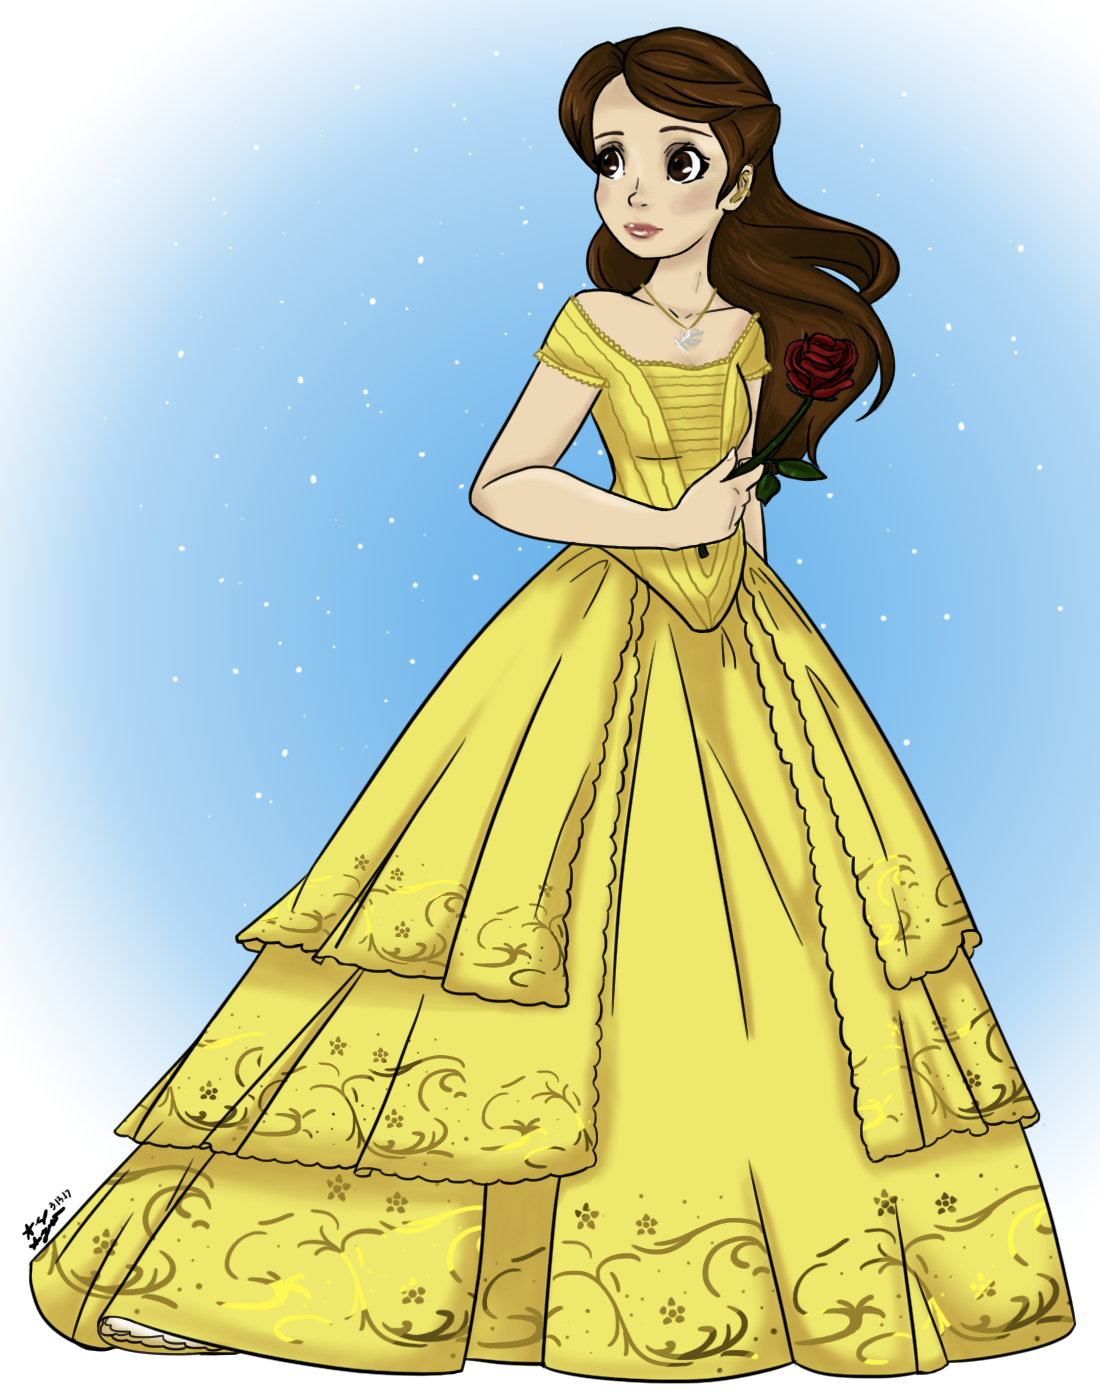 Up A Little Later Than Usual Is Speedpaint Saturday I Decided To Draw Belle This Week Because The Live Action Beauty And Beast Opened Weekend